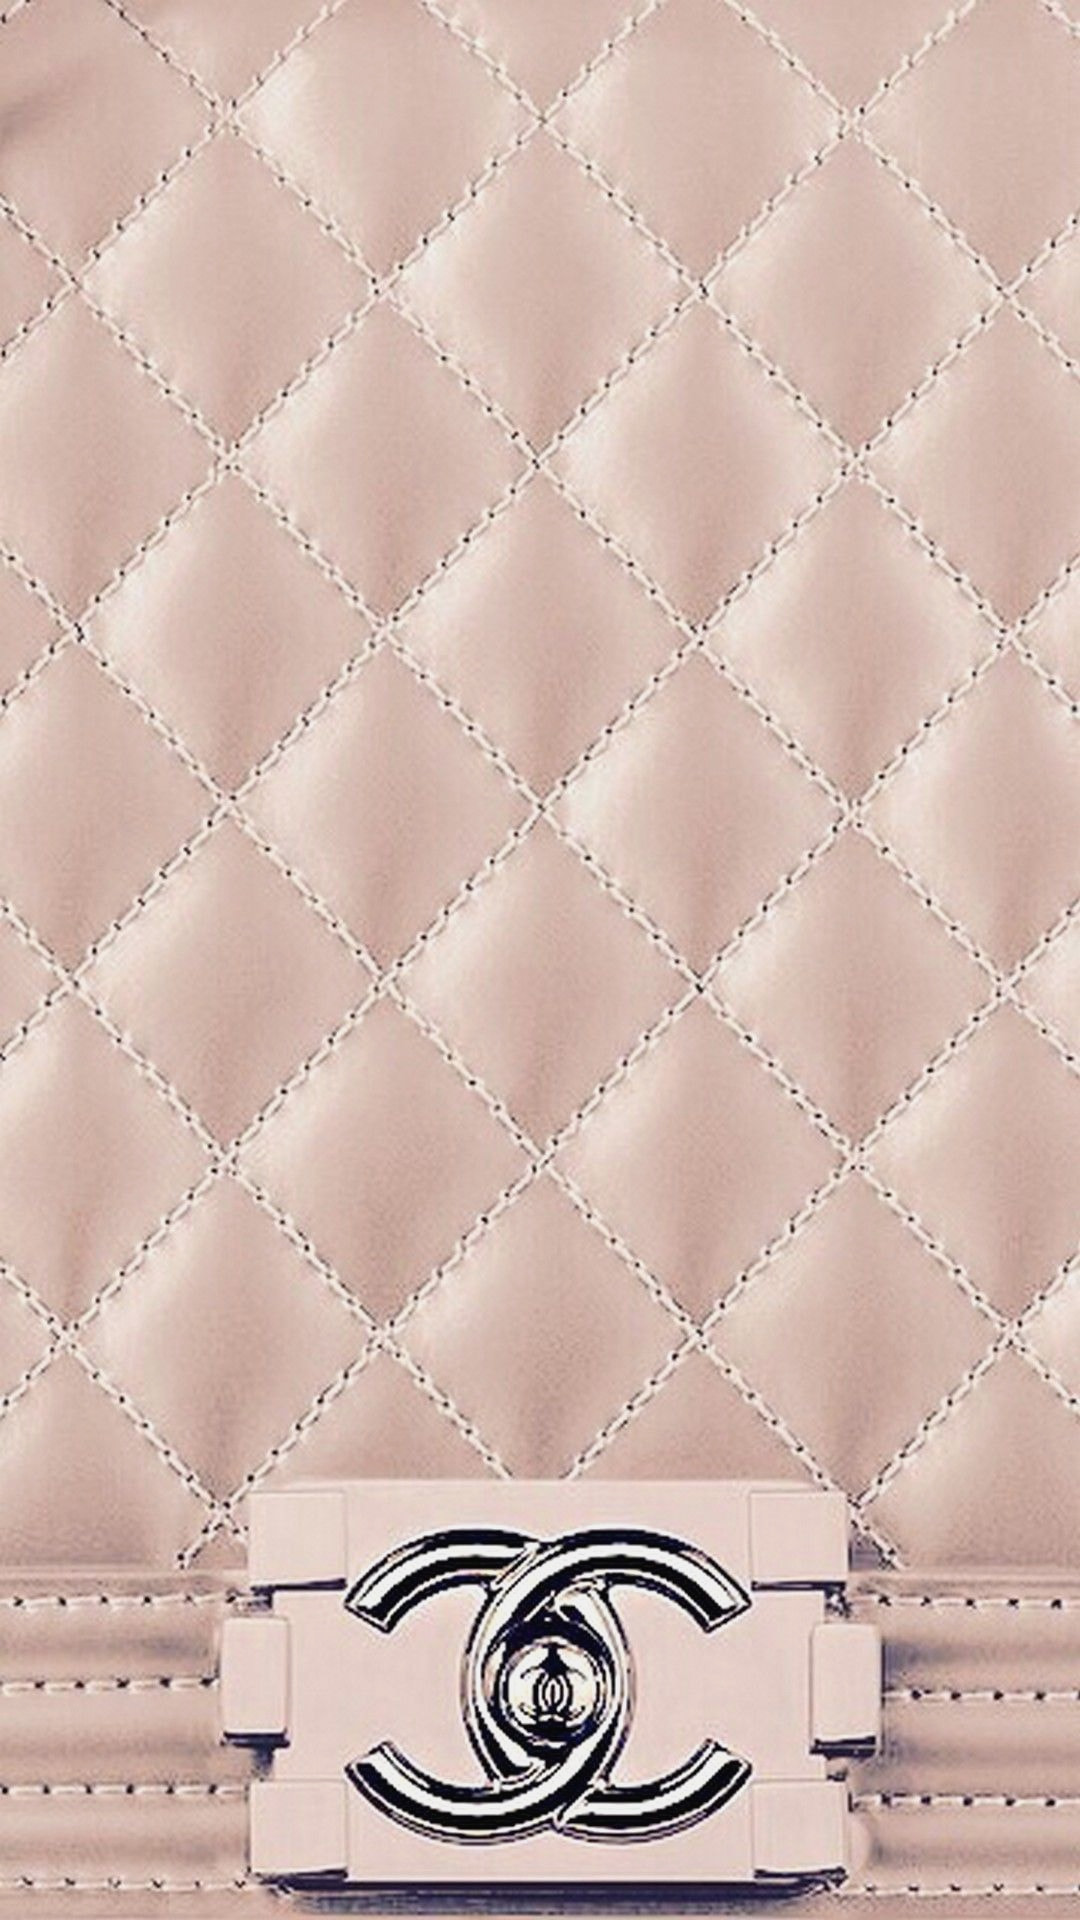 Rose Gold Girly Rose Gold Wallpaper Iphone